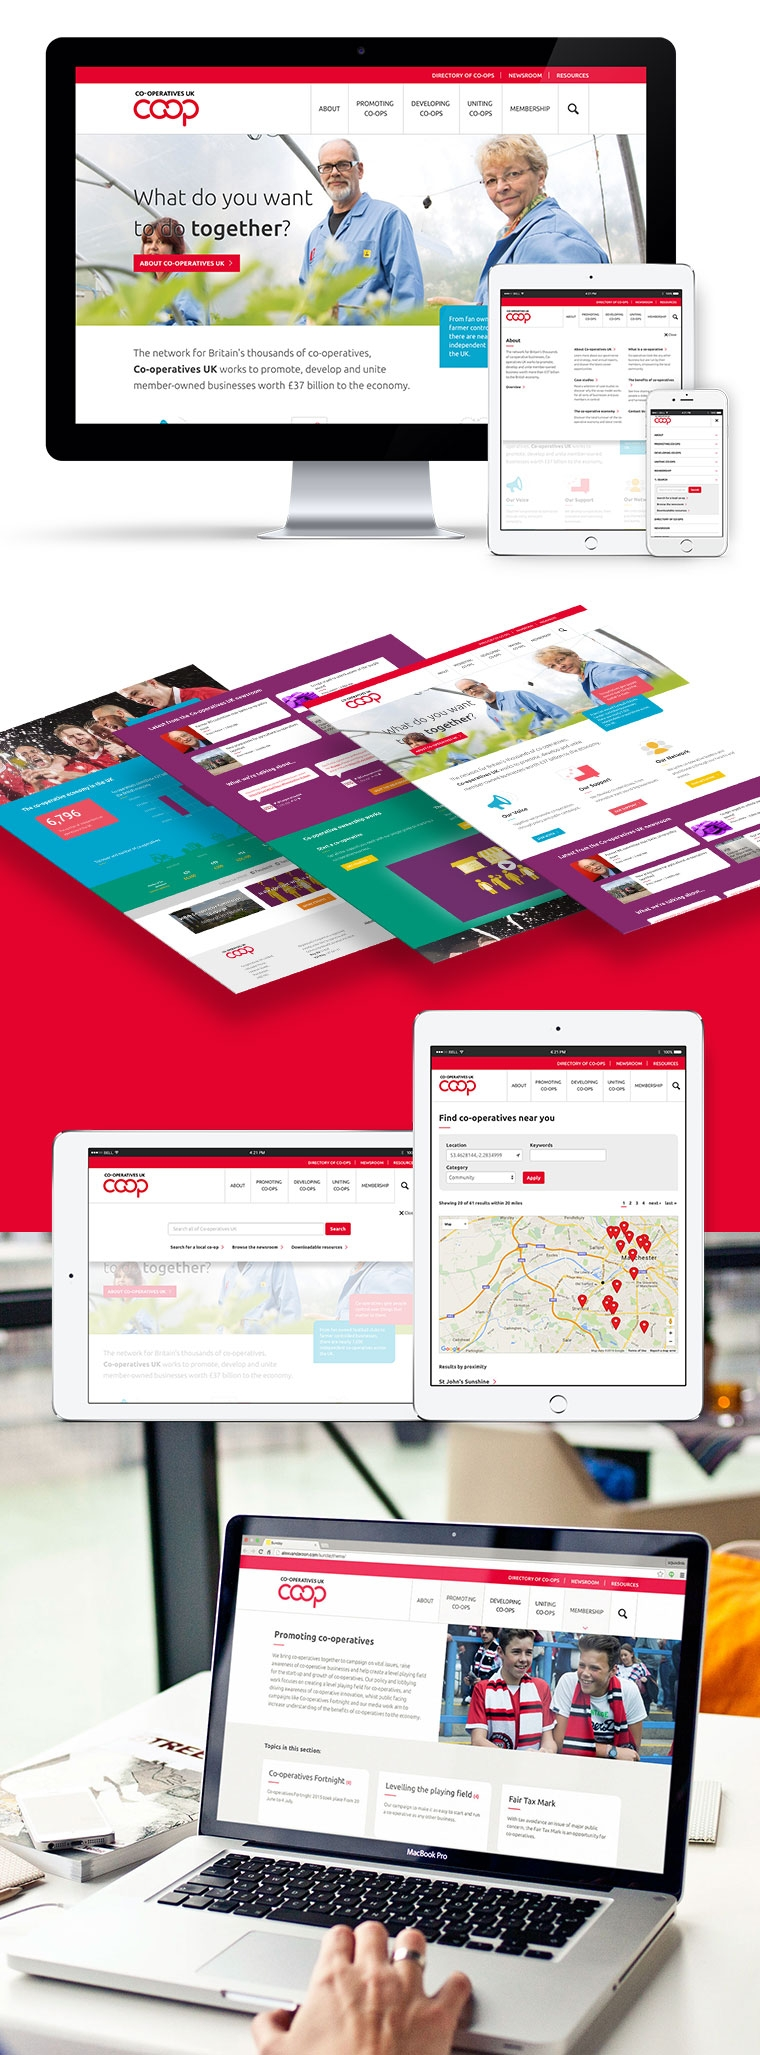 Coop case study - webpages on different devices and designs